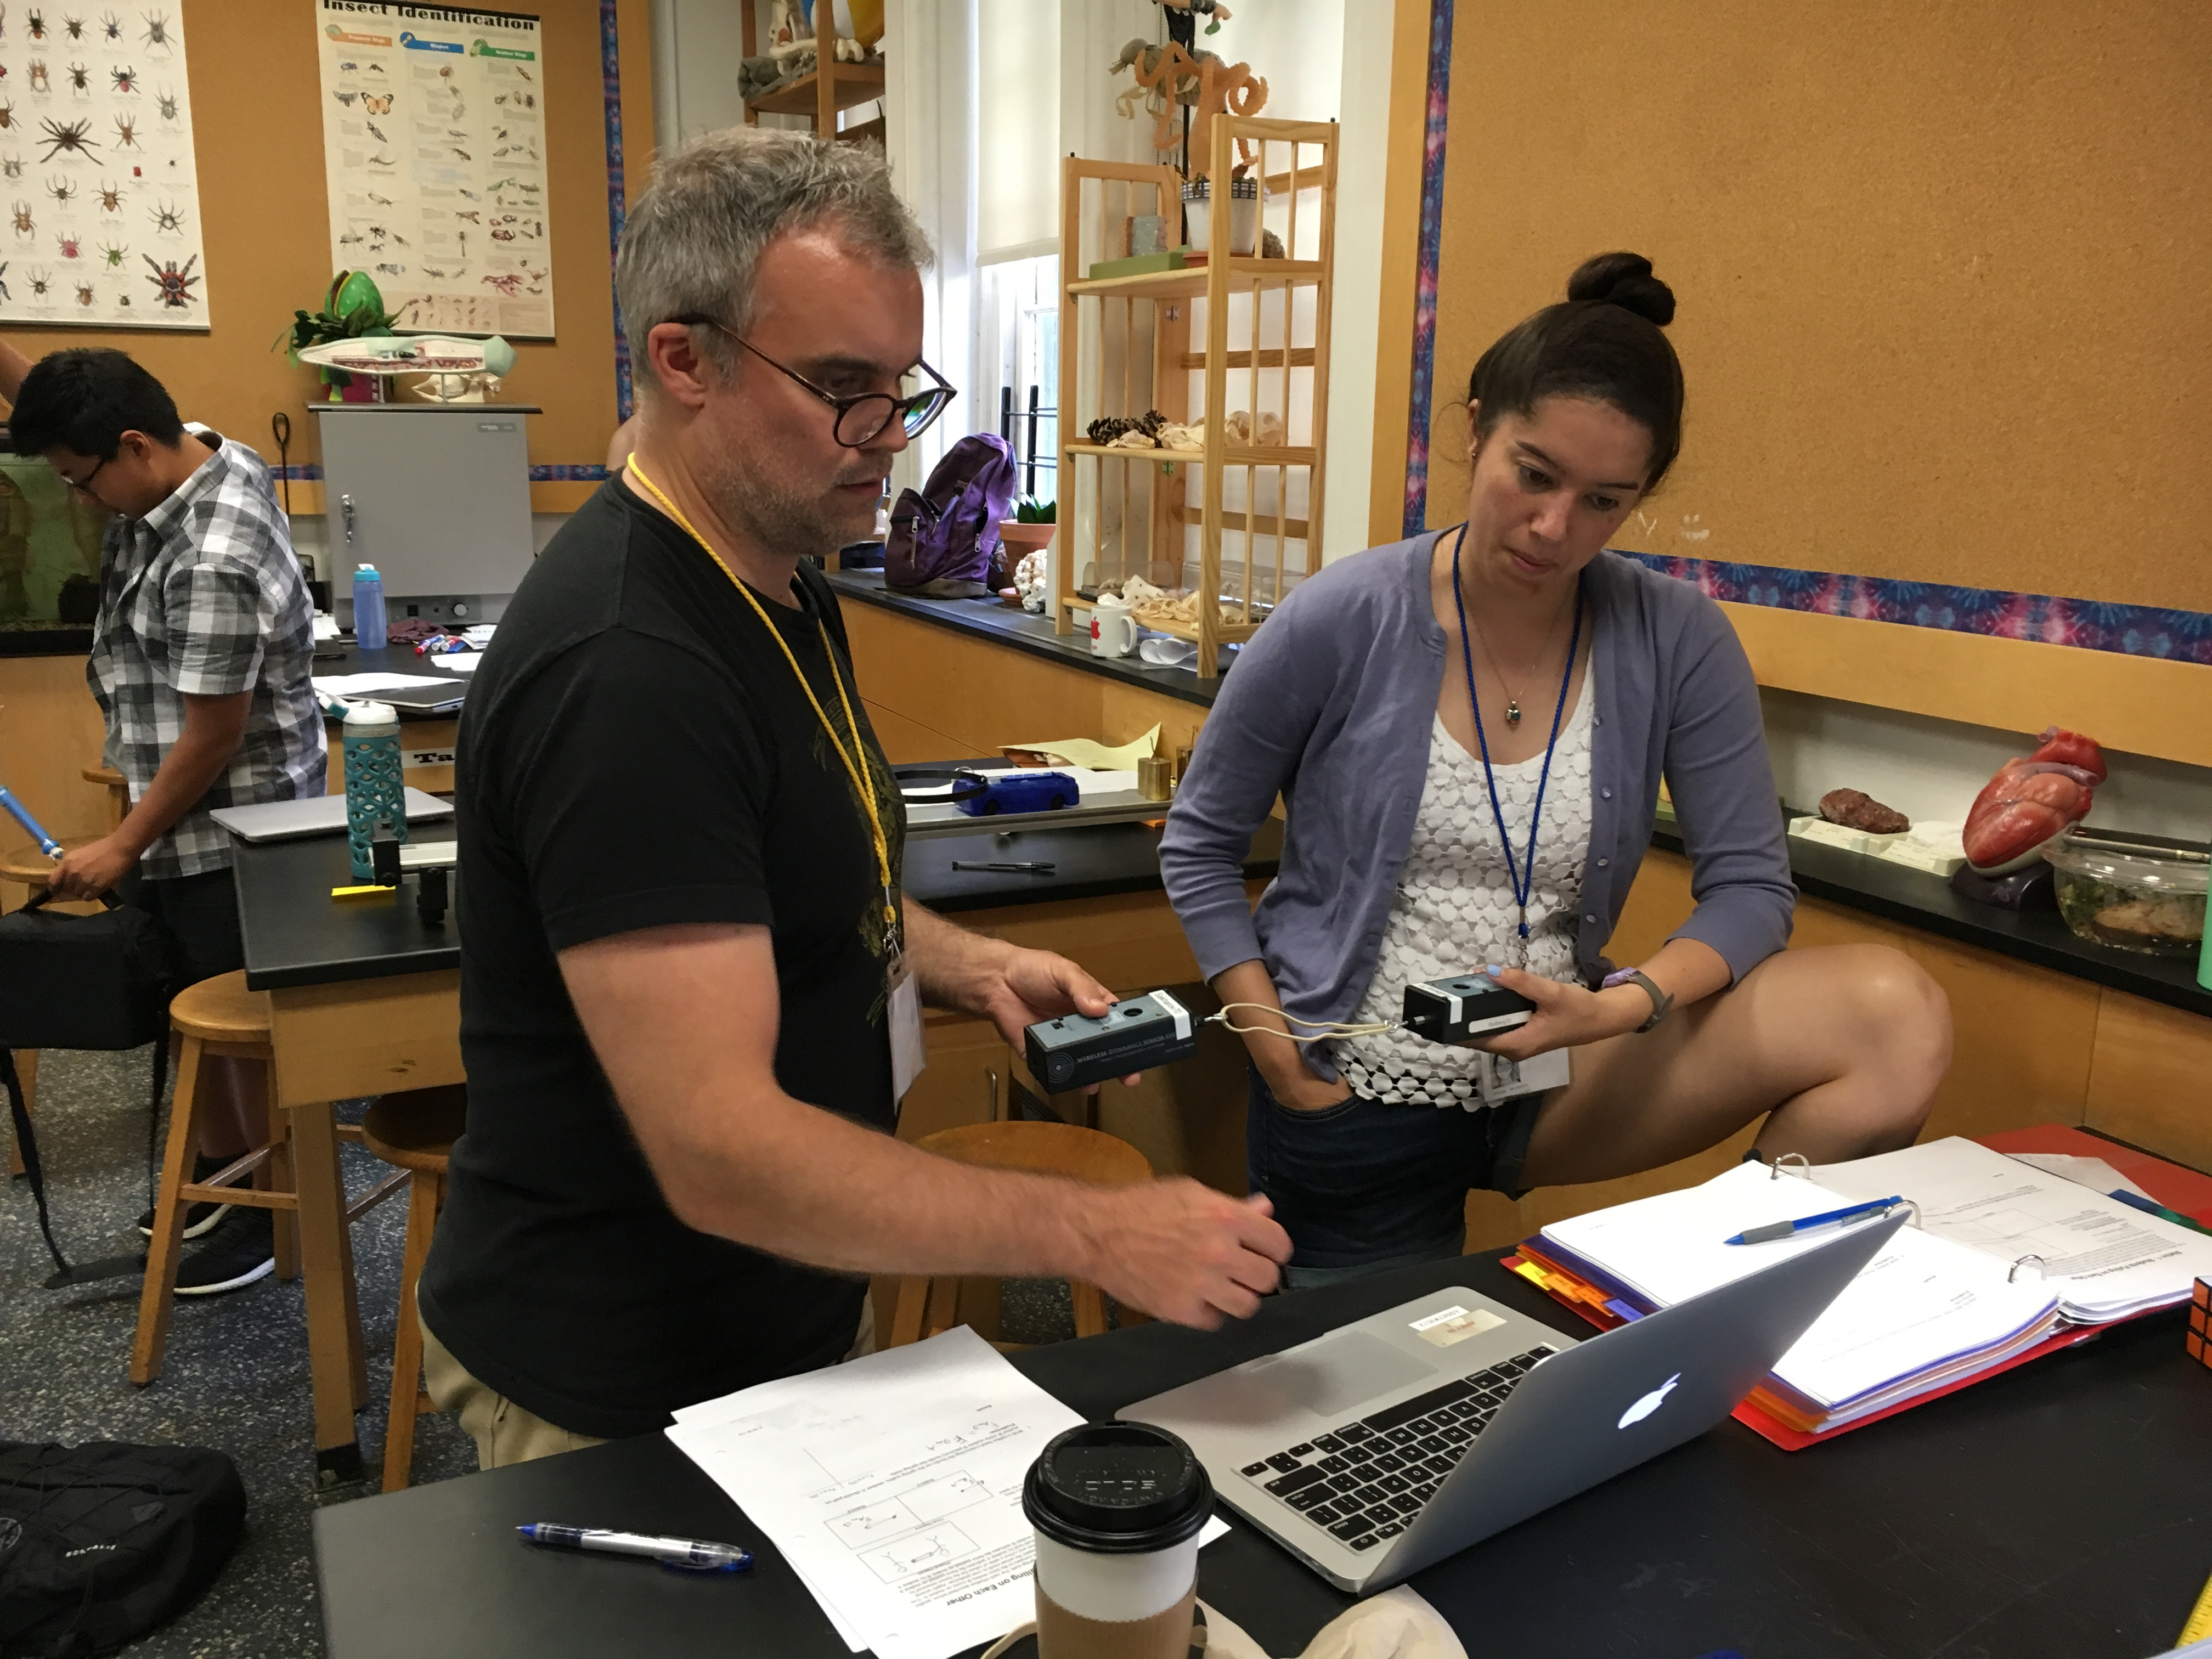 Video Analysis in the Physics and Chemistry Classroom: Pivot Interactives and the NGSS